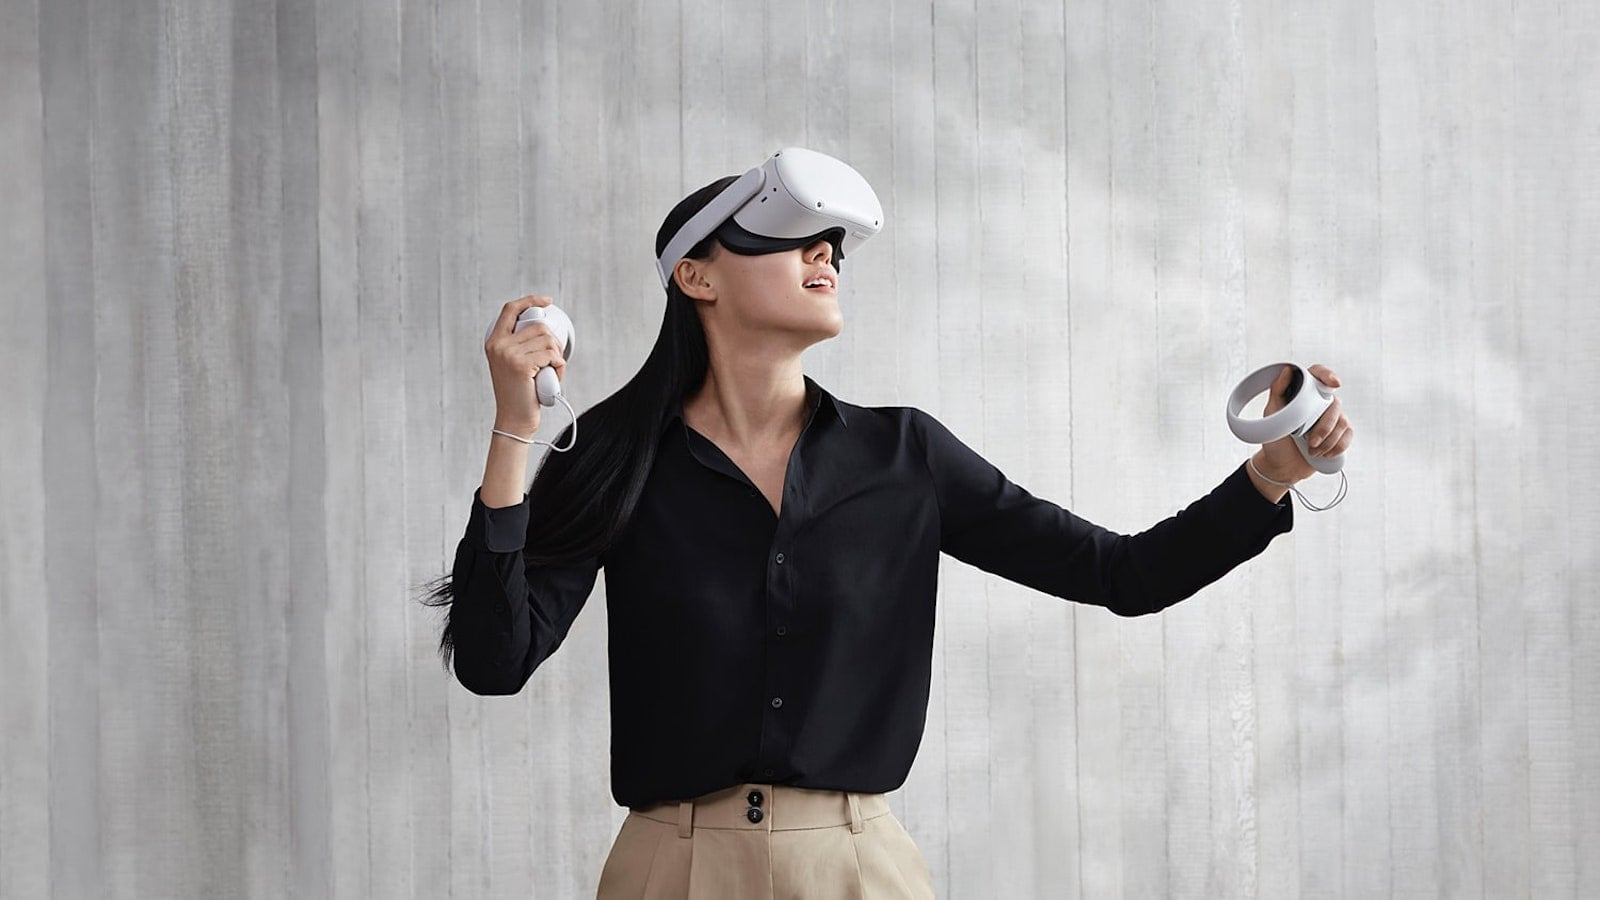 Oculus Quest 2 VR & AR headset has an incredibly reasonable price